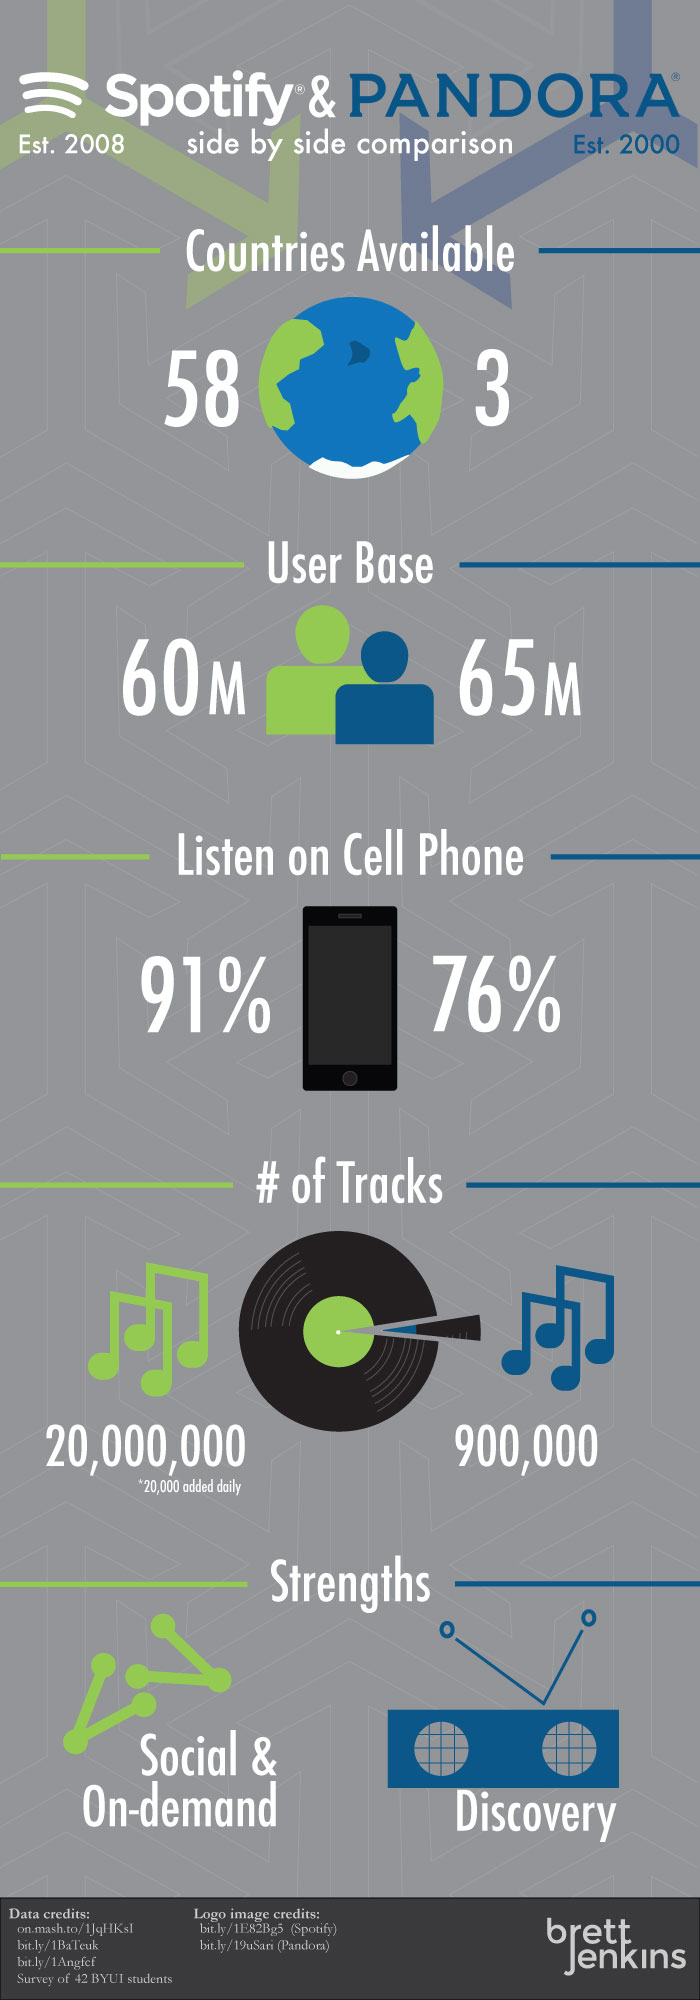 Spotify Pandora comparison infographic